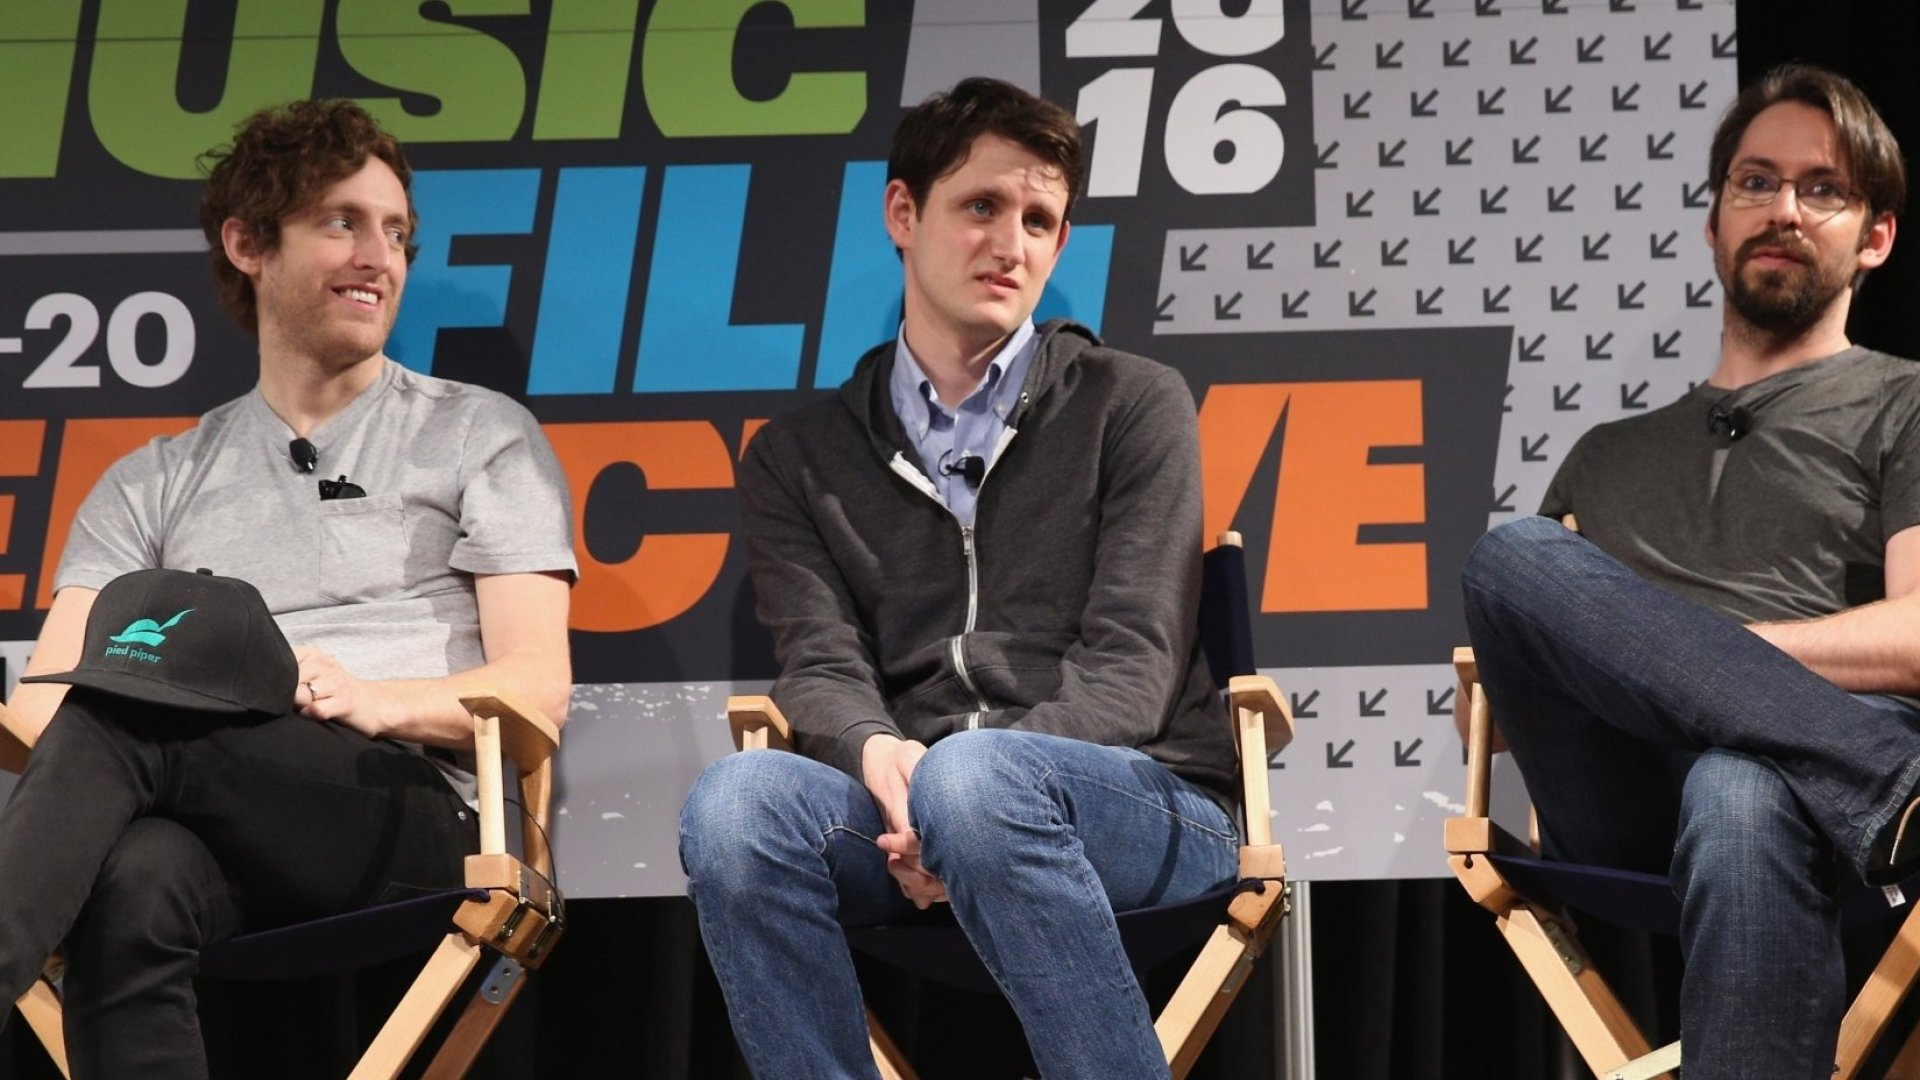 Why Silicon Valley's Martin Starr and Zach Woods Won't Be Tweeting About the Season Three Premiere